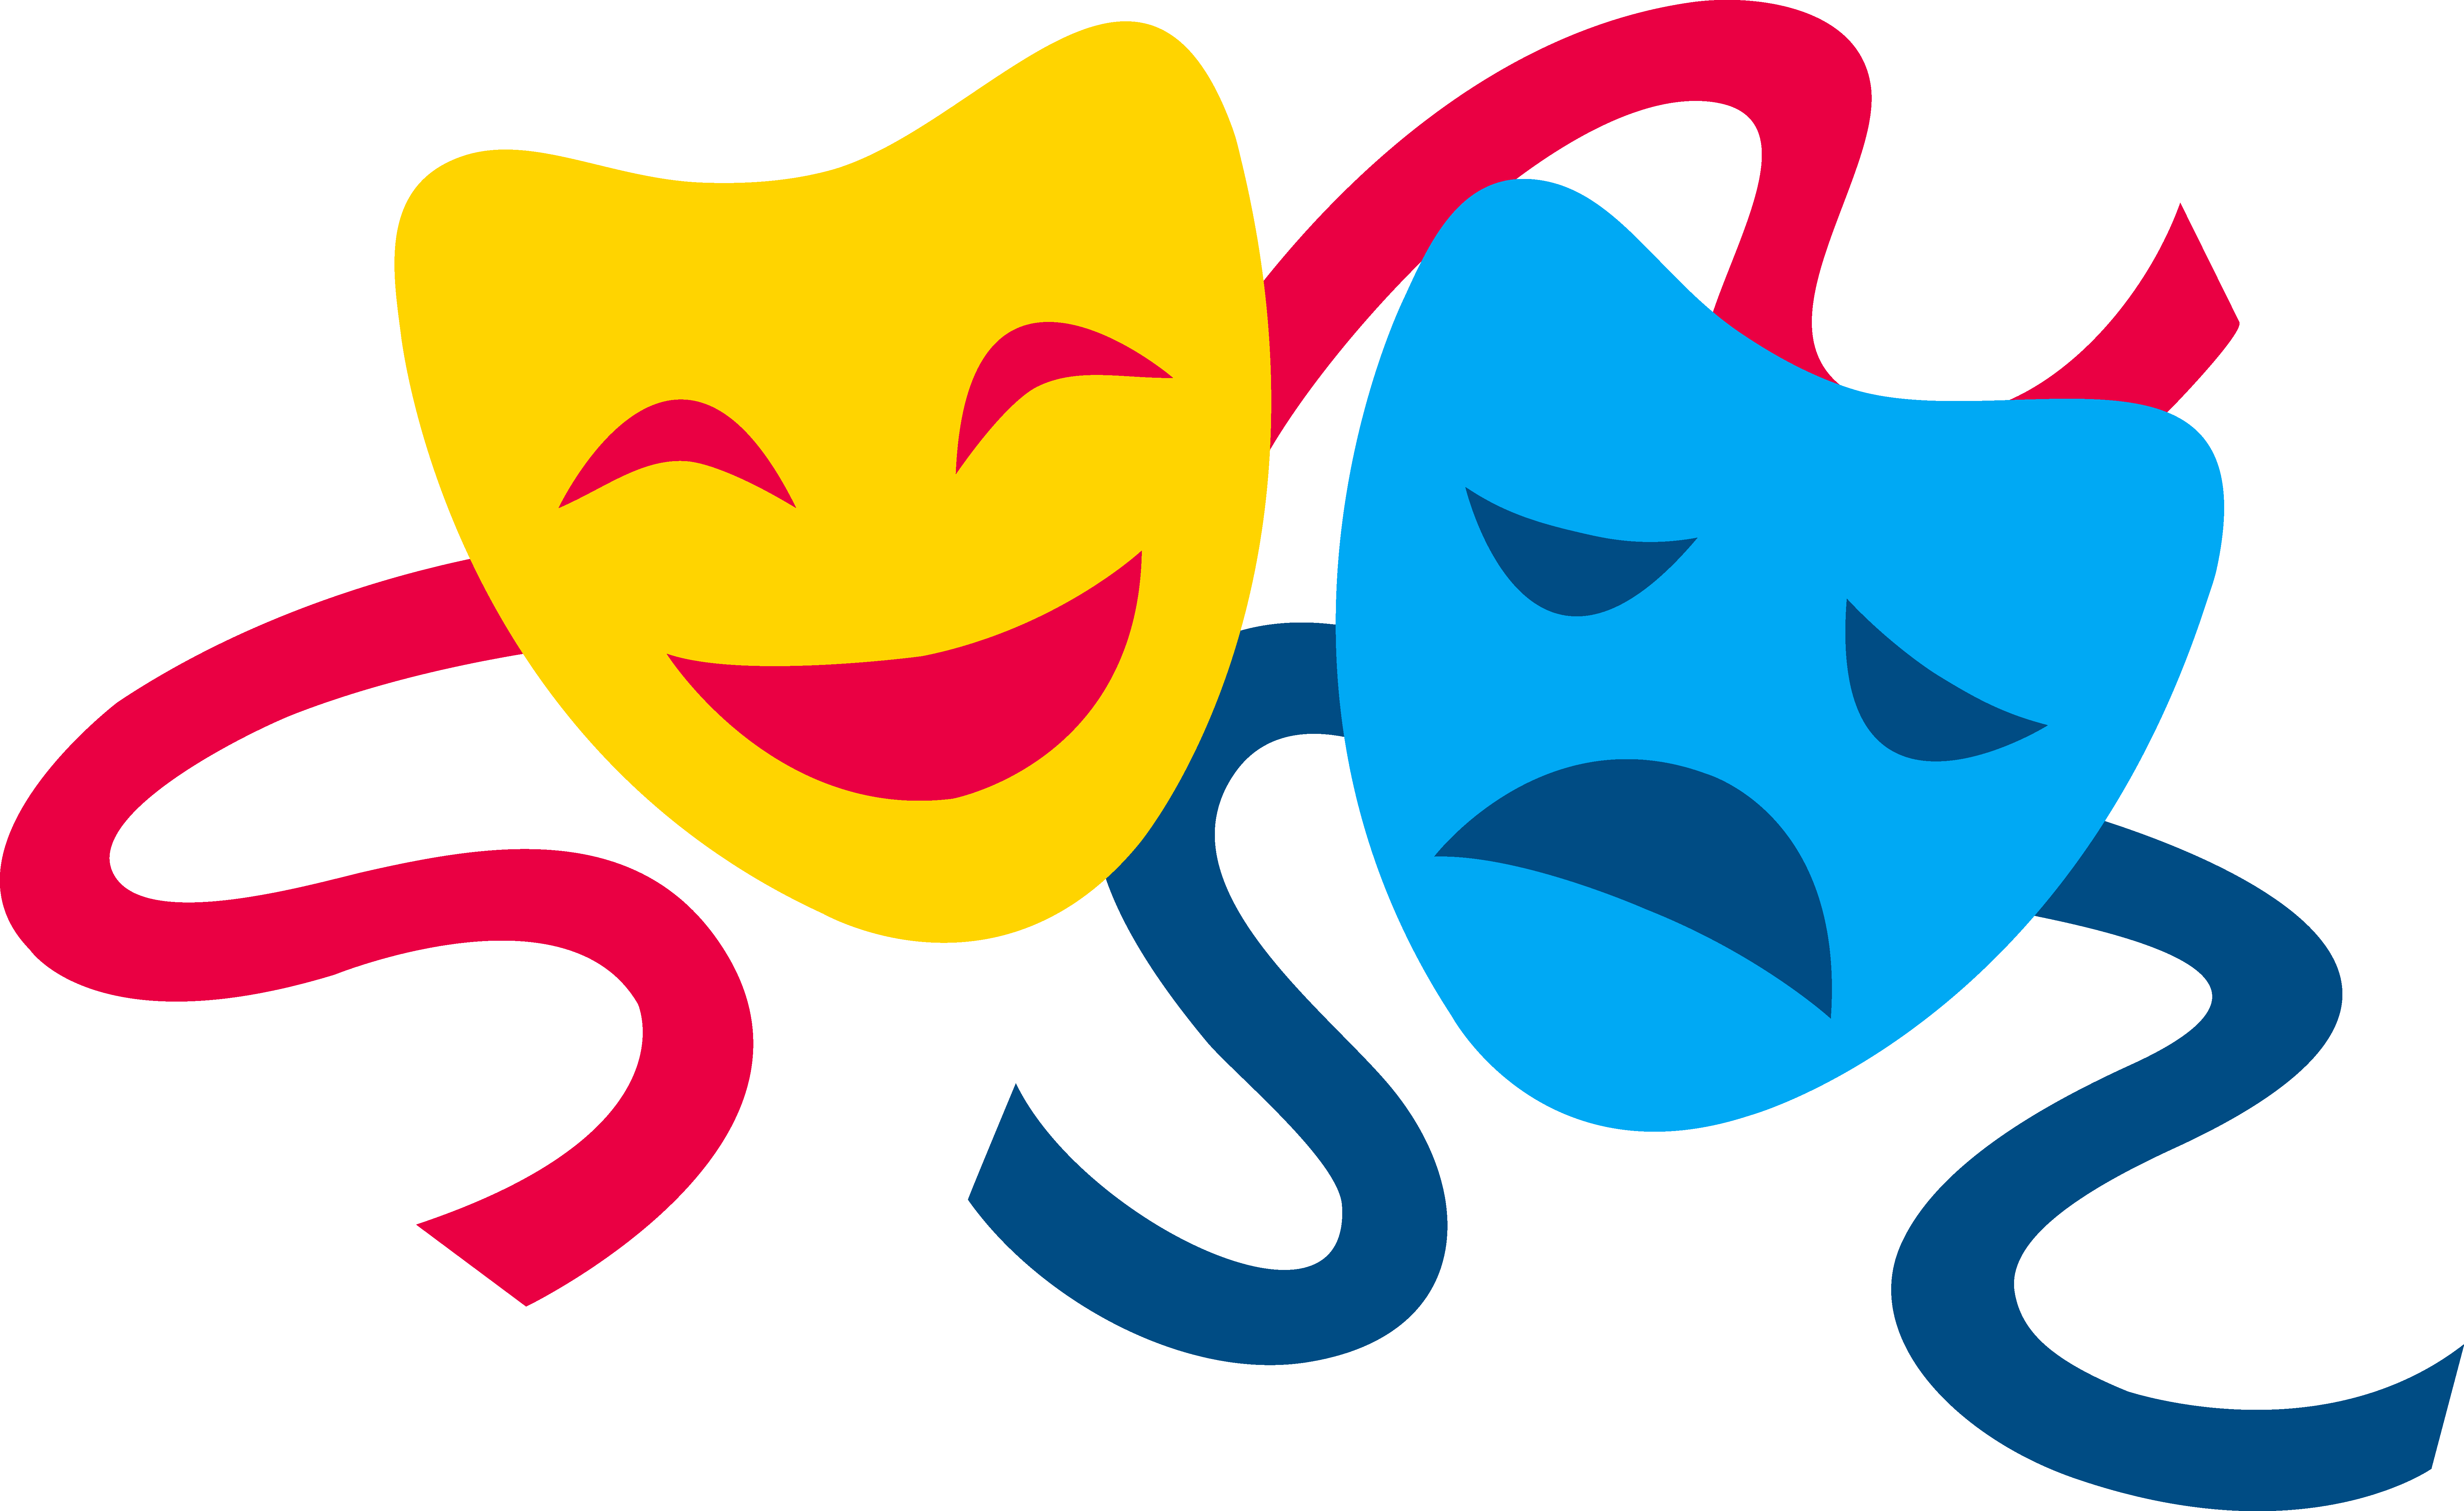 Simple Theatre Masks - ClipArt Best